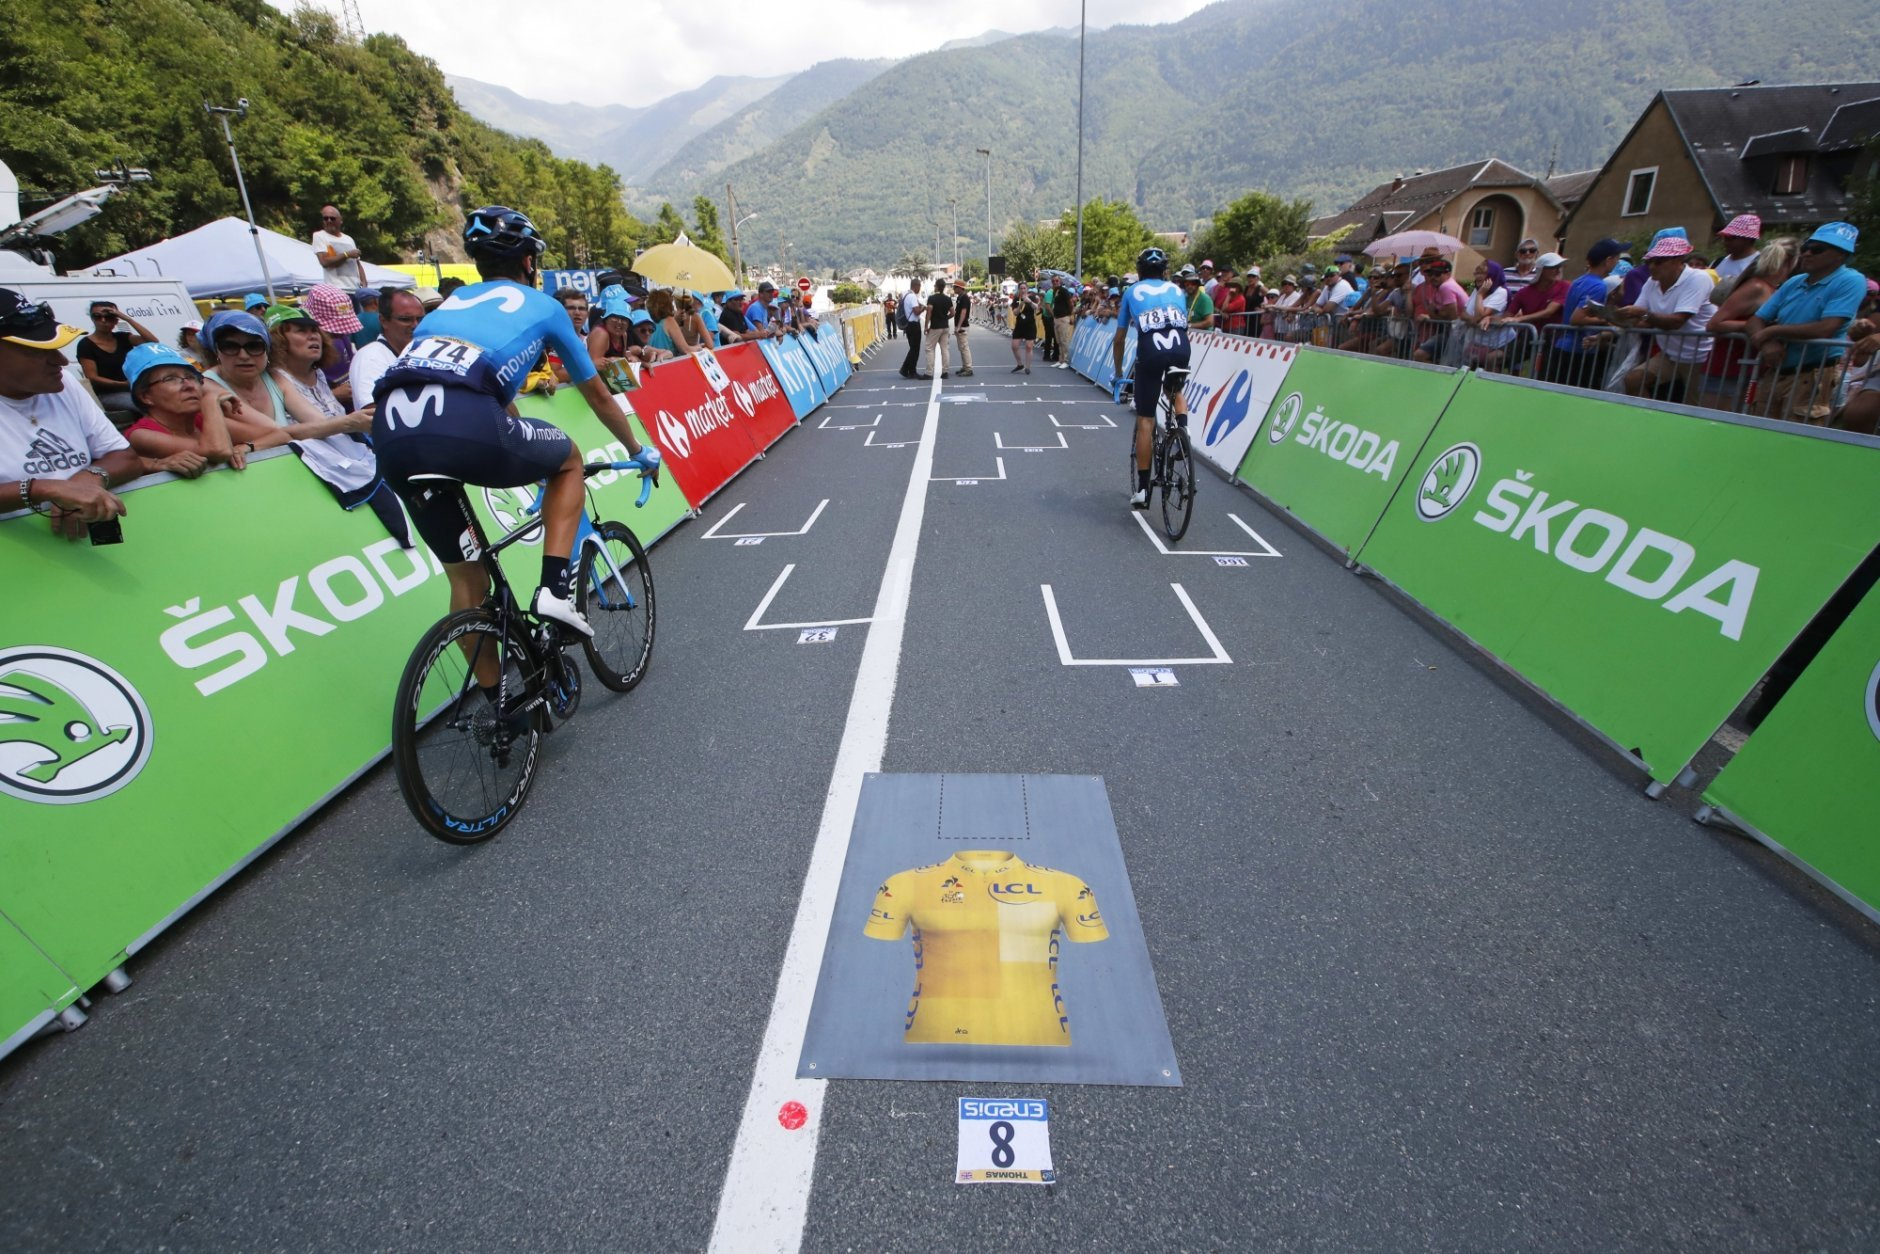 Spain's Imanol Erviti, left, and Spain's Alejandro Valverde, right, pass the Formula One-like start grid with overall leader Britain's Geraint Thomas's spot marked by the overall leader's yellow jersey, prior to the seventeenth stage of the Tour de France cycling race over 65 kilometers (40.4 miles) with start in Bagneres-de-Luchon and finish in Saint-Lary-Soulan, Col du Portet pass, France, Wednesday July 25, 2018. The Tour de France thinks it has some solutions to liven up the action with today's shorter mountain stage with three grueling climbs, including an uphill finish, intermediate bonus sprints, and a Formula One-like grid start. (AP Photo/Christophe Ena)